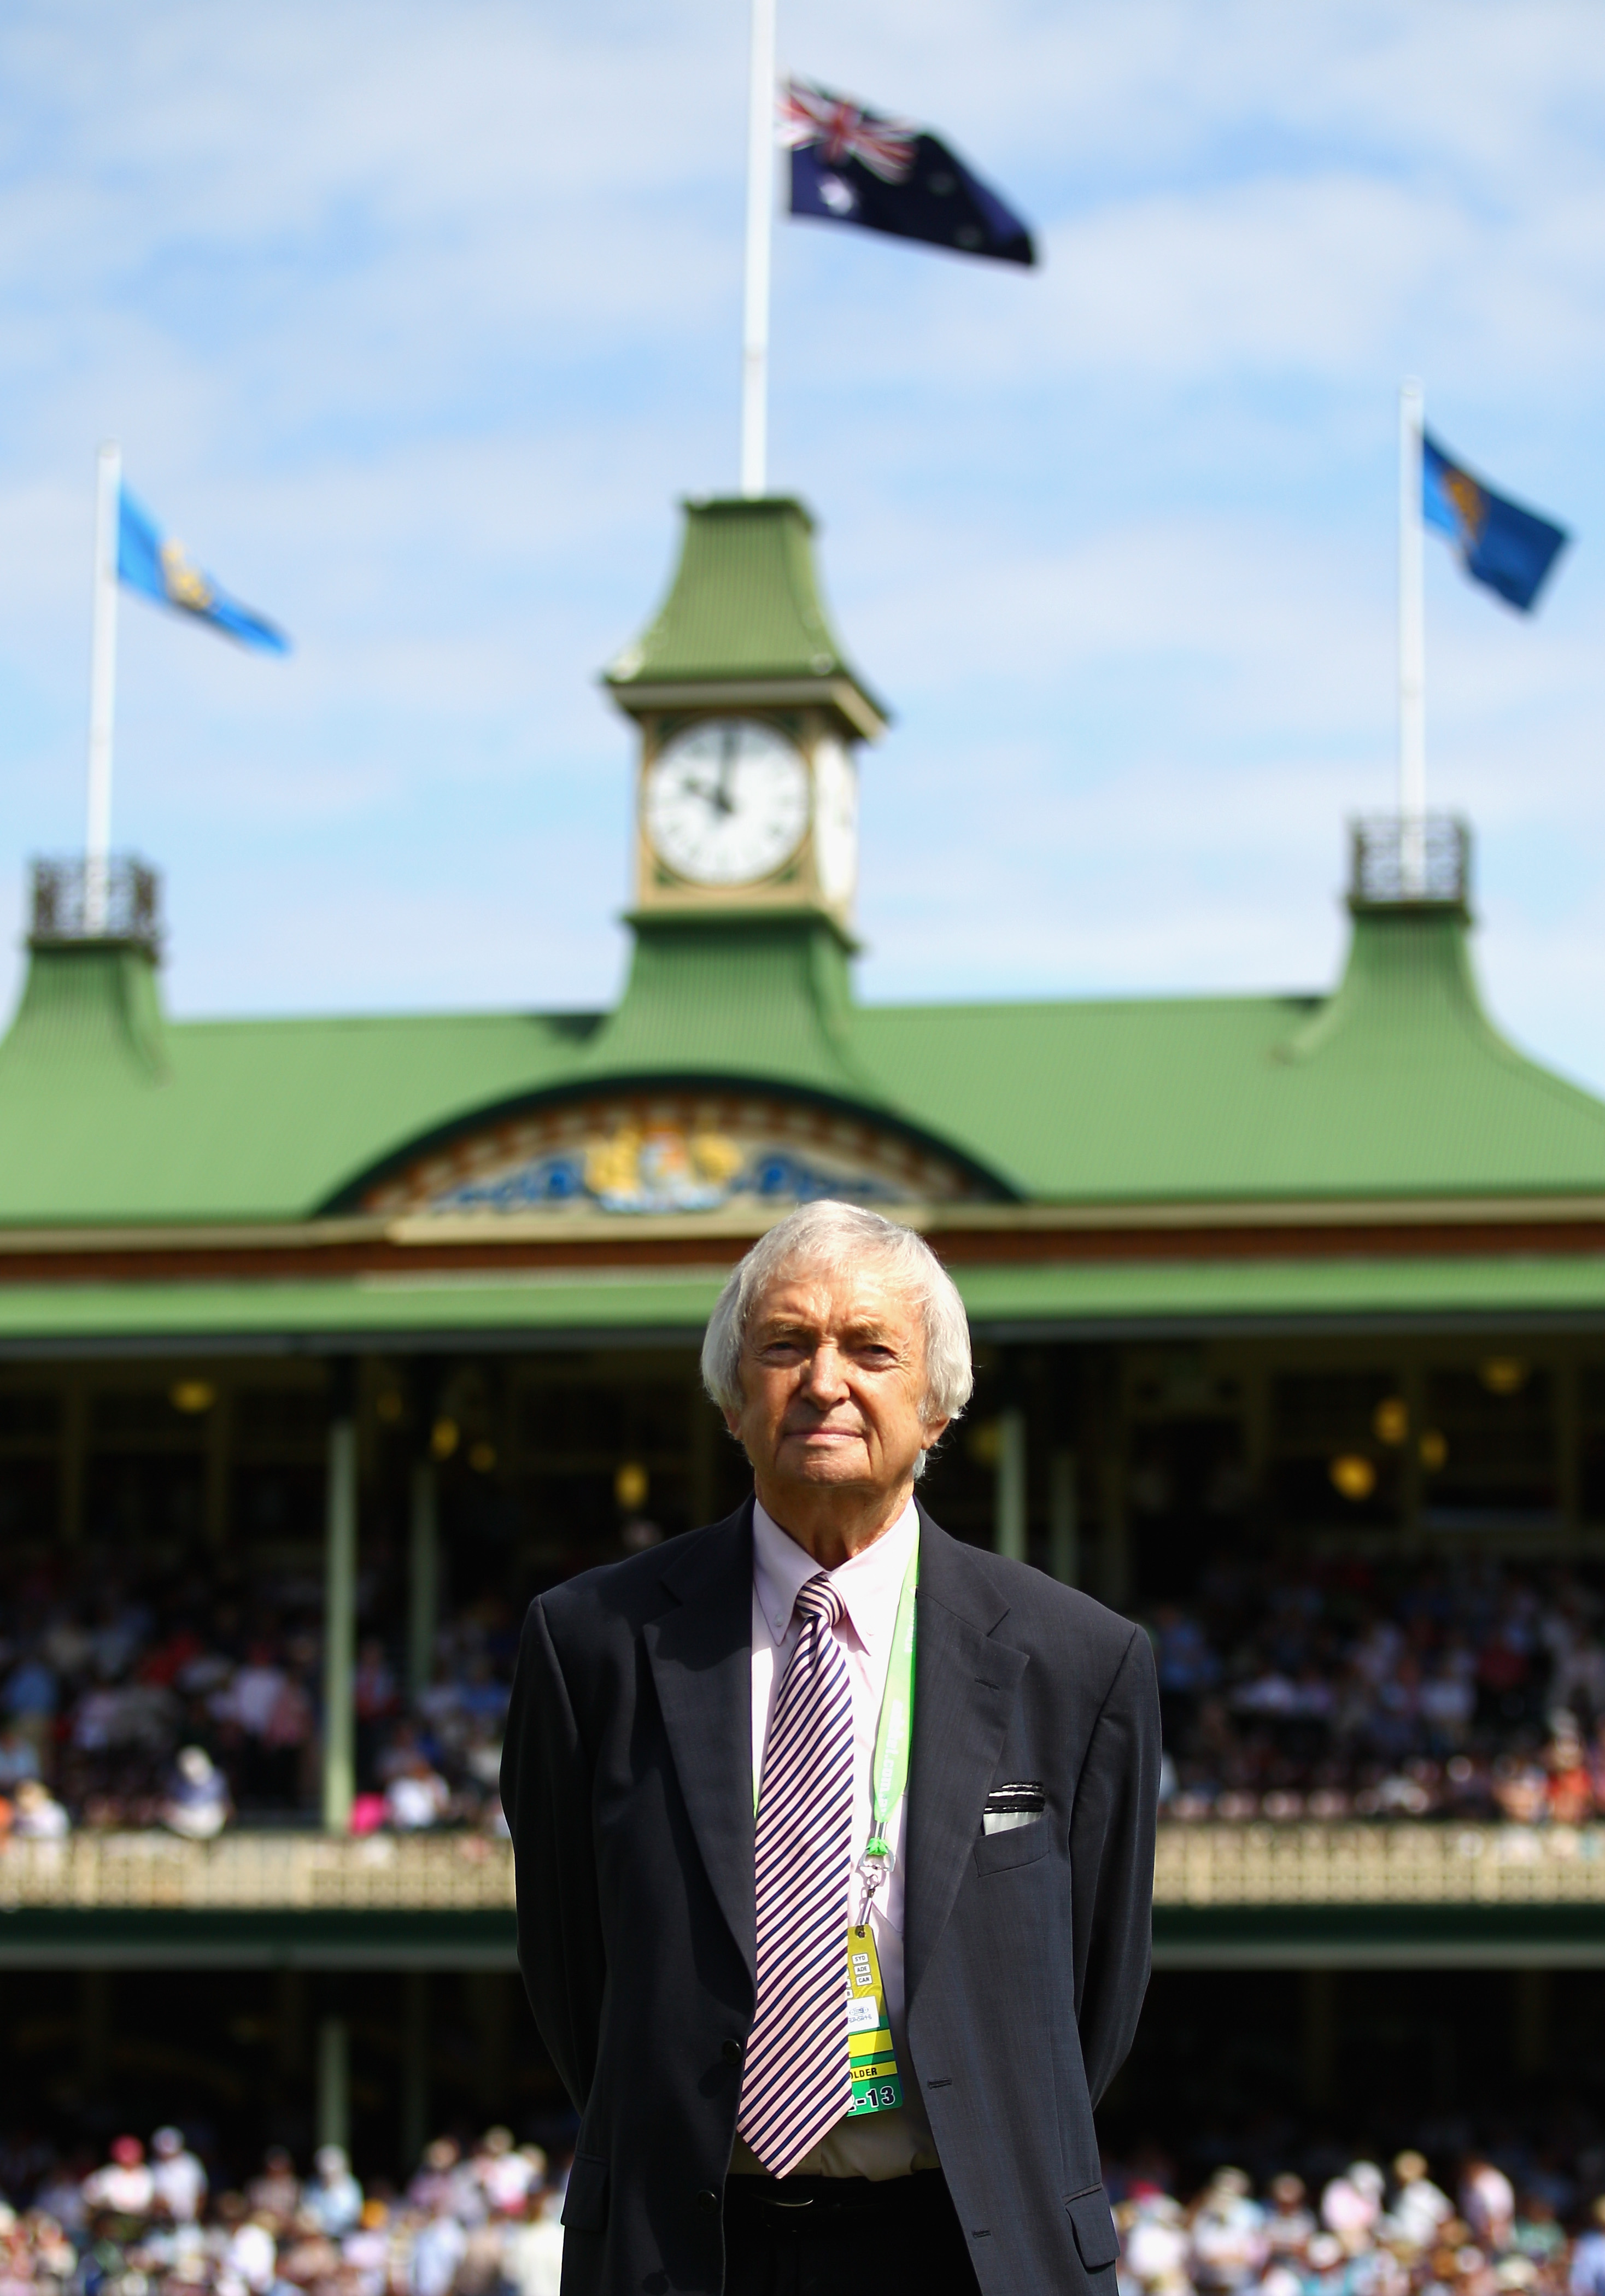 Richie Benaud looks on during day one of the Third Test match between Australia and Sri Lanka at Sydney Cricket Ground on Jan. 3, 2013 in Sydney.